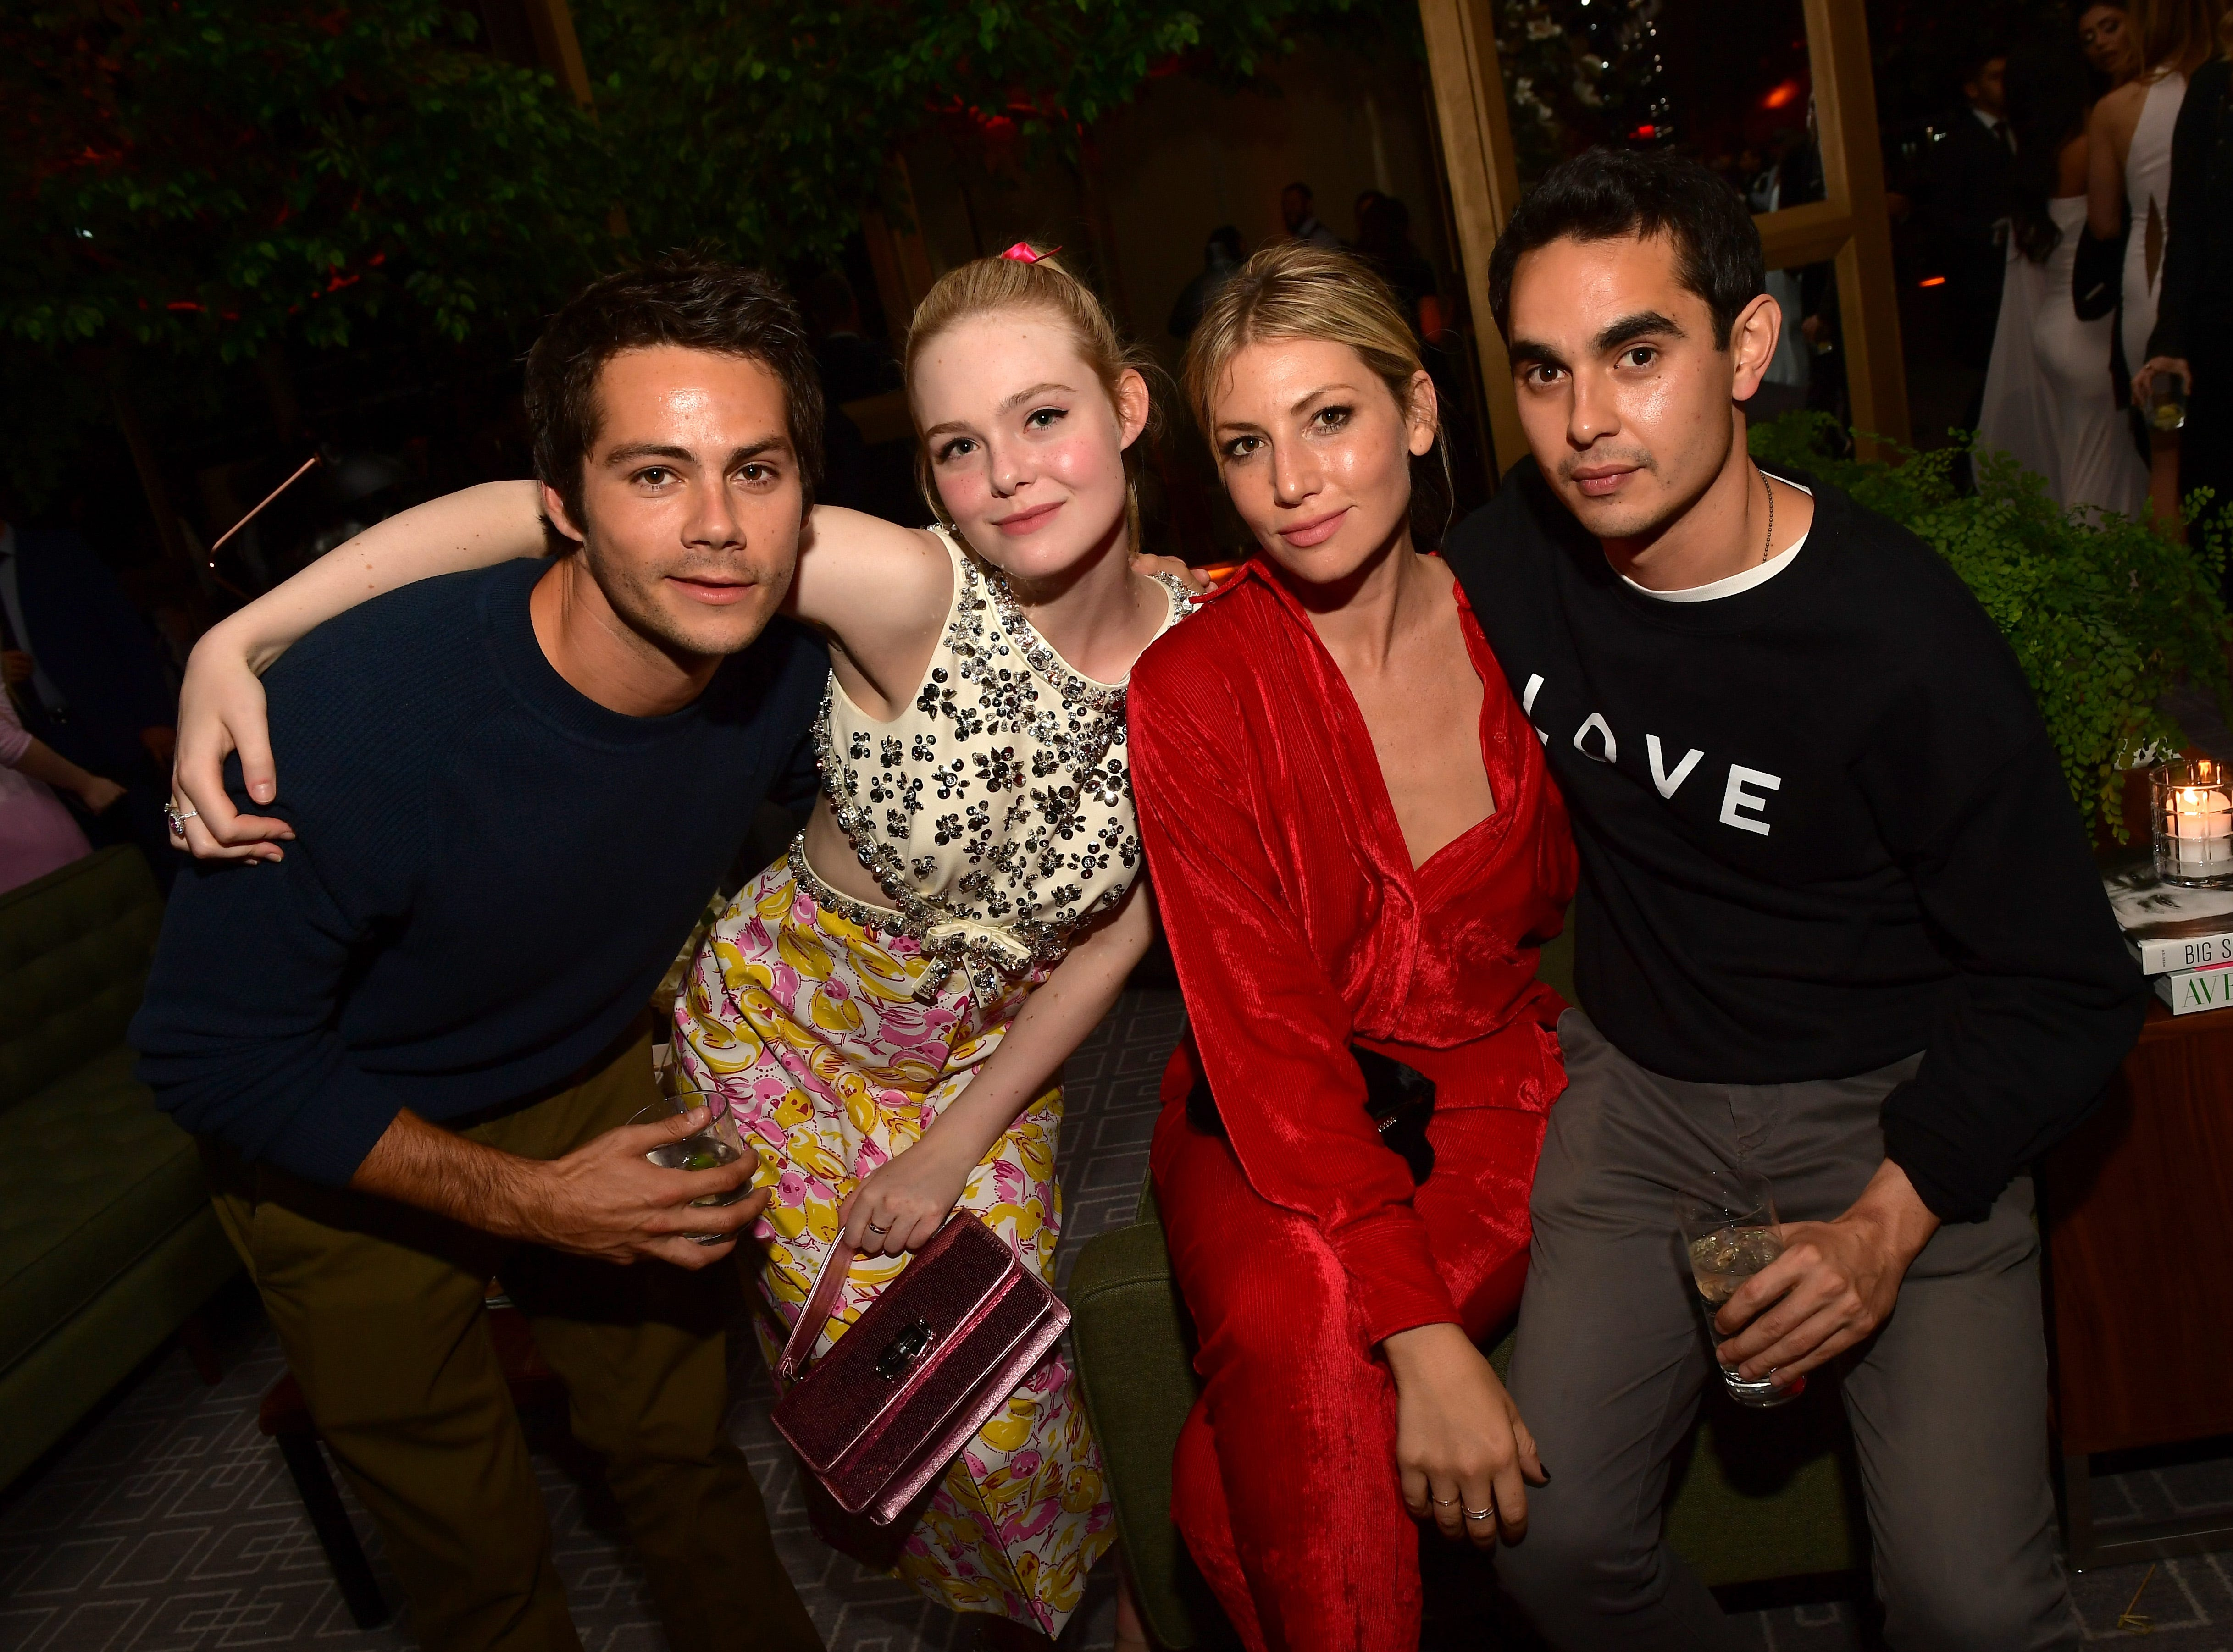 TORONTO, ON - SEPTEMBER 08:  (L-R) Dylan O'Brien, Elle Fanning, Ari Graynor and Max Minghella attend 2018 HFPA and InStyle's TIFF Celebration at the Four Seasons Hotel on September 8, 2018 in Toronto, Canada.  (Photo by Matt Winkelmeyer/Getty Images for InStyle) ORG XMIT: 775214192 ORIG FILE ID: 1029658596